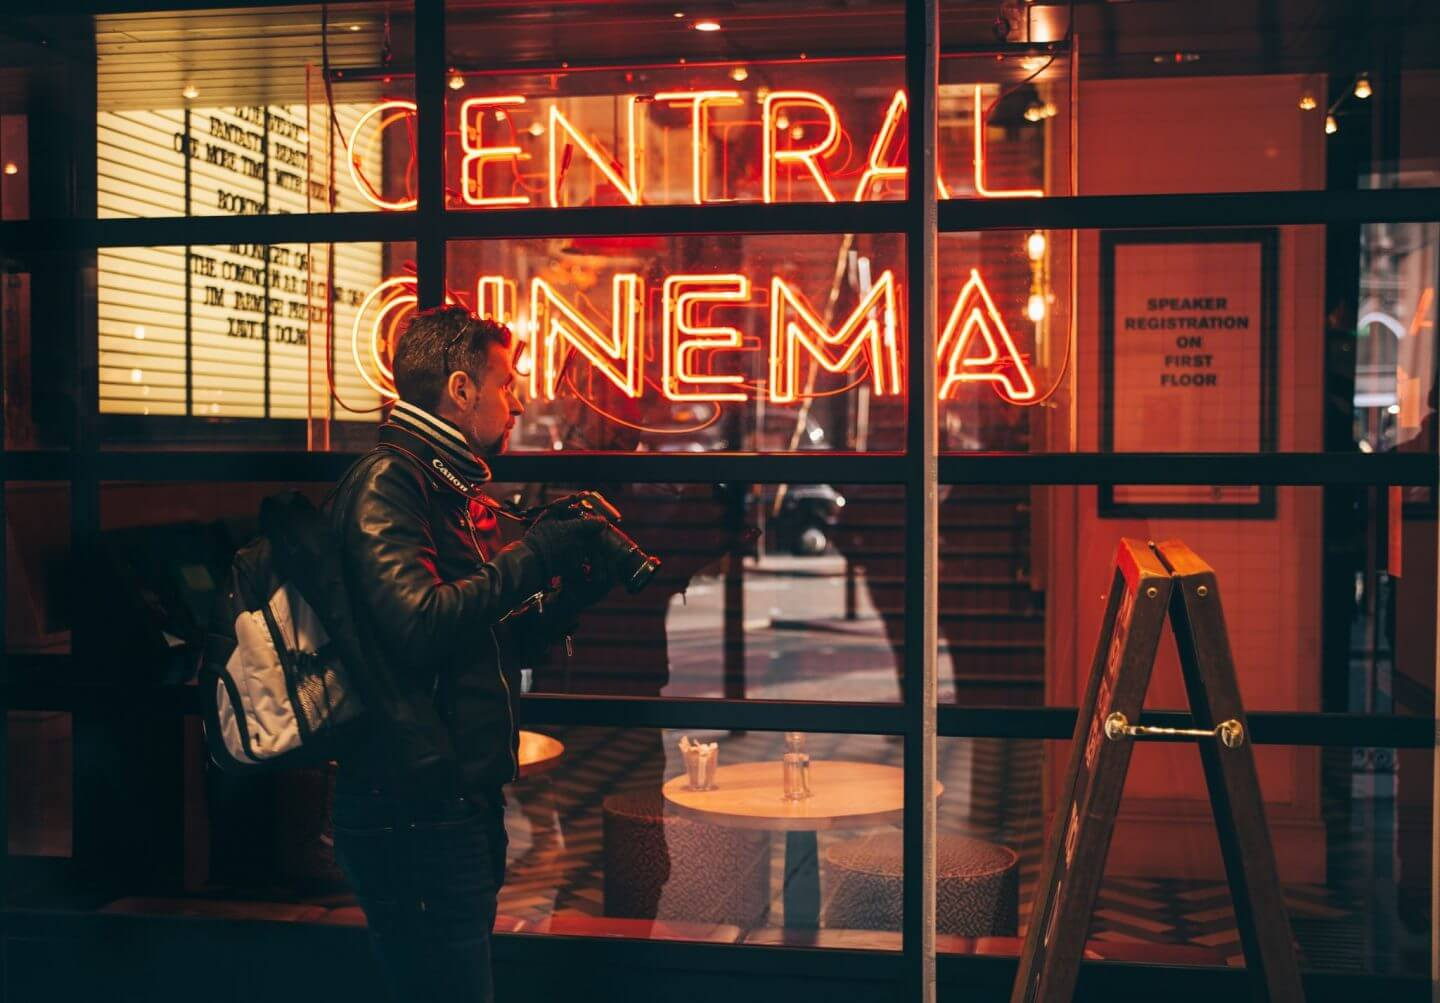 Man outside central cinema sign - best classic movies